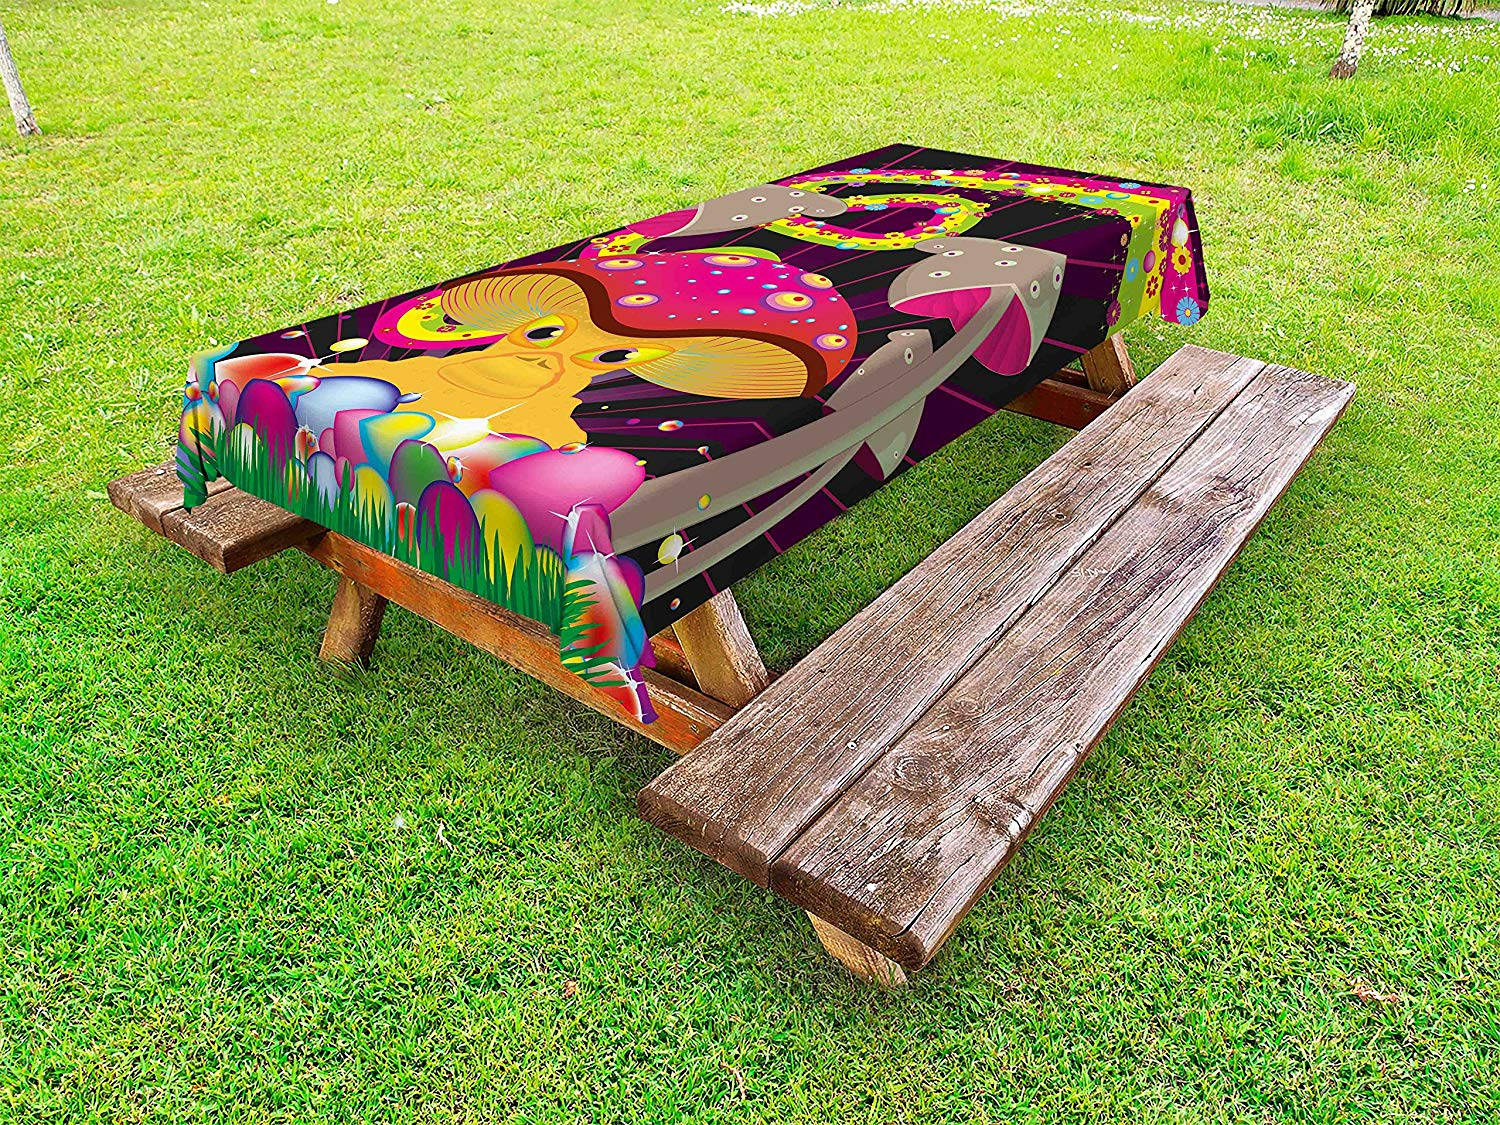 Lunarable Mushroom Outdoor Tablecloth, Vibrant Psychedelic Composition with Fantastic Mushroom Floral Rainbow Color Blots, Decorative Washable Picnic Table Cloth, 58 X 84 inches, Multicolor